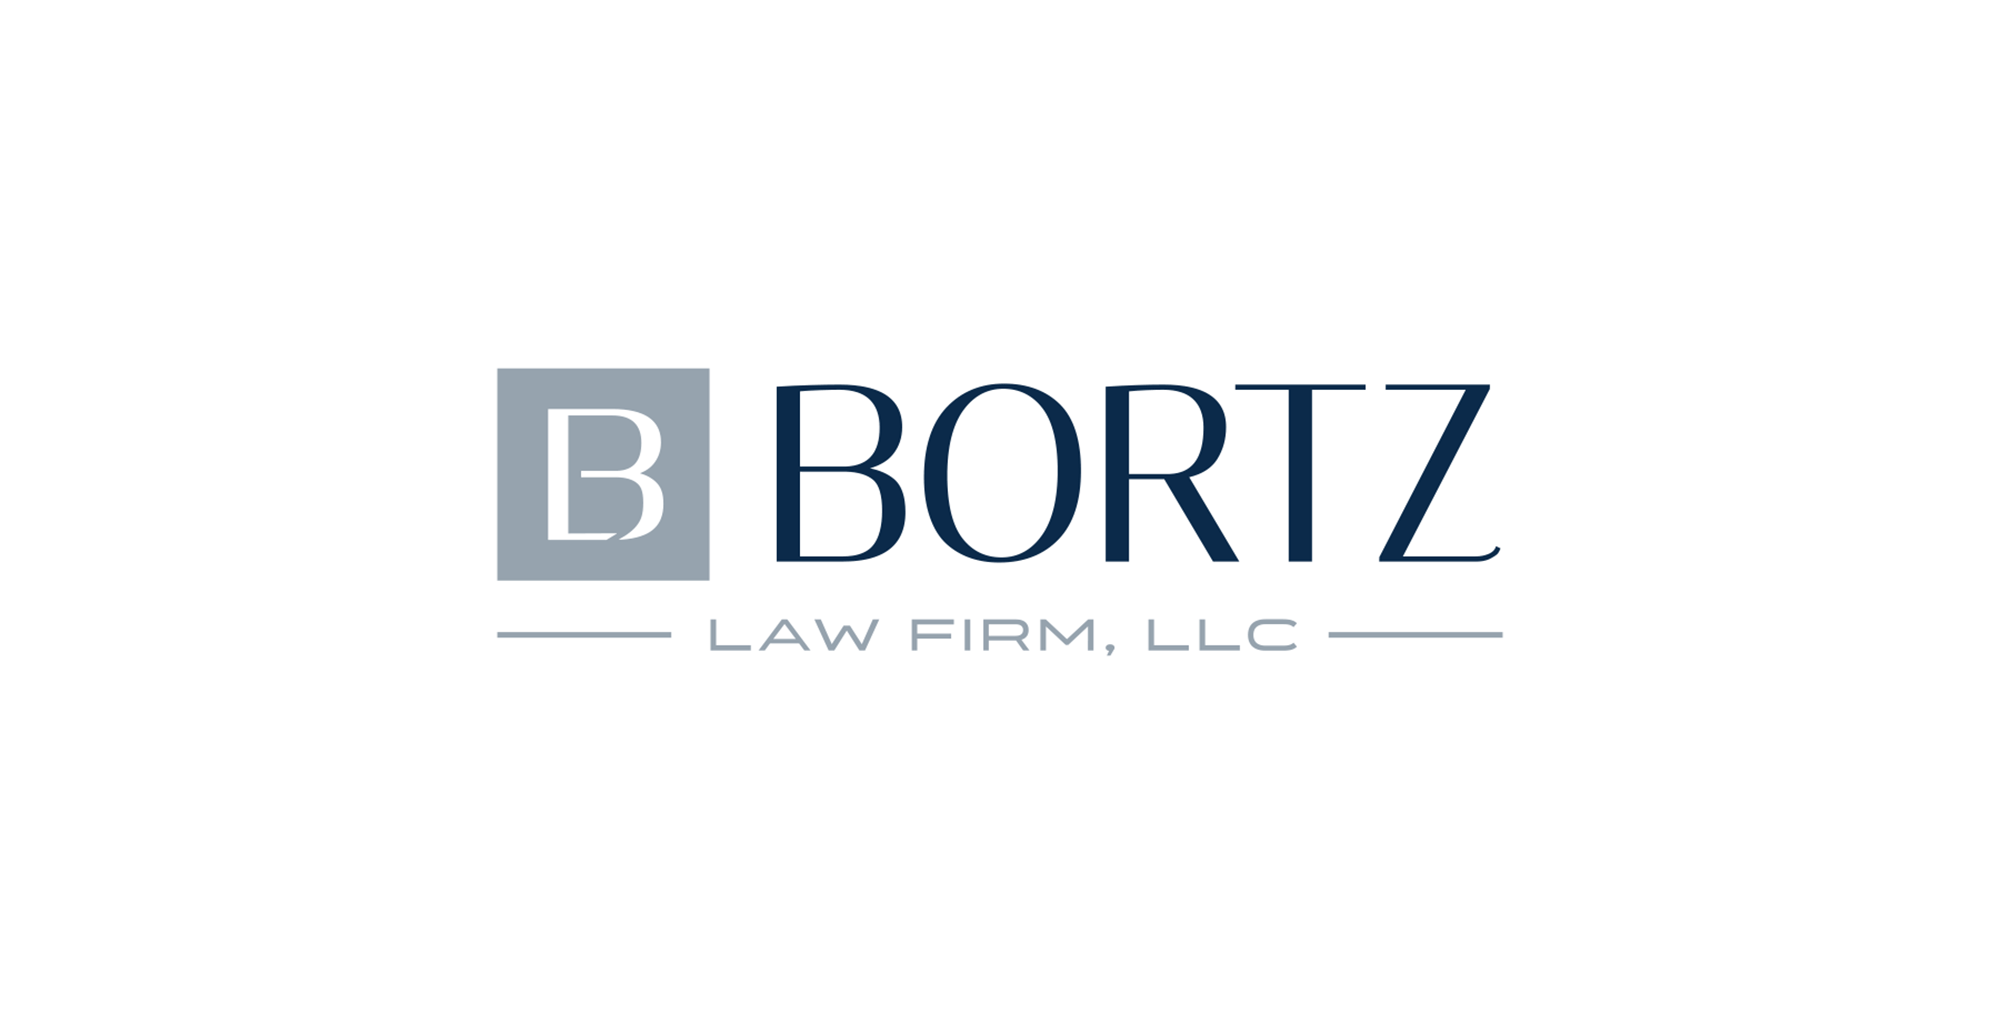 bortz-law-logo-design